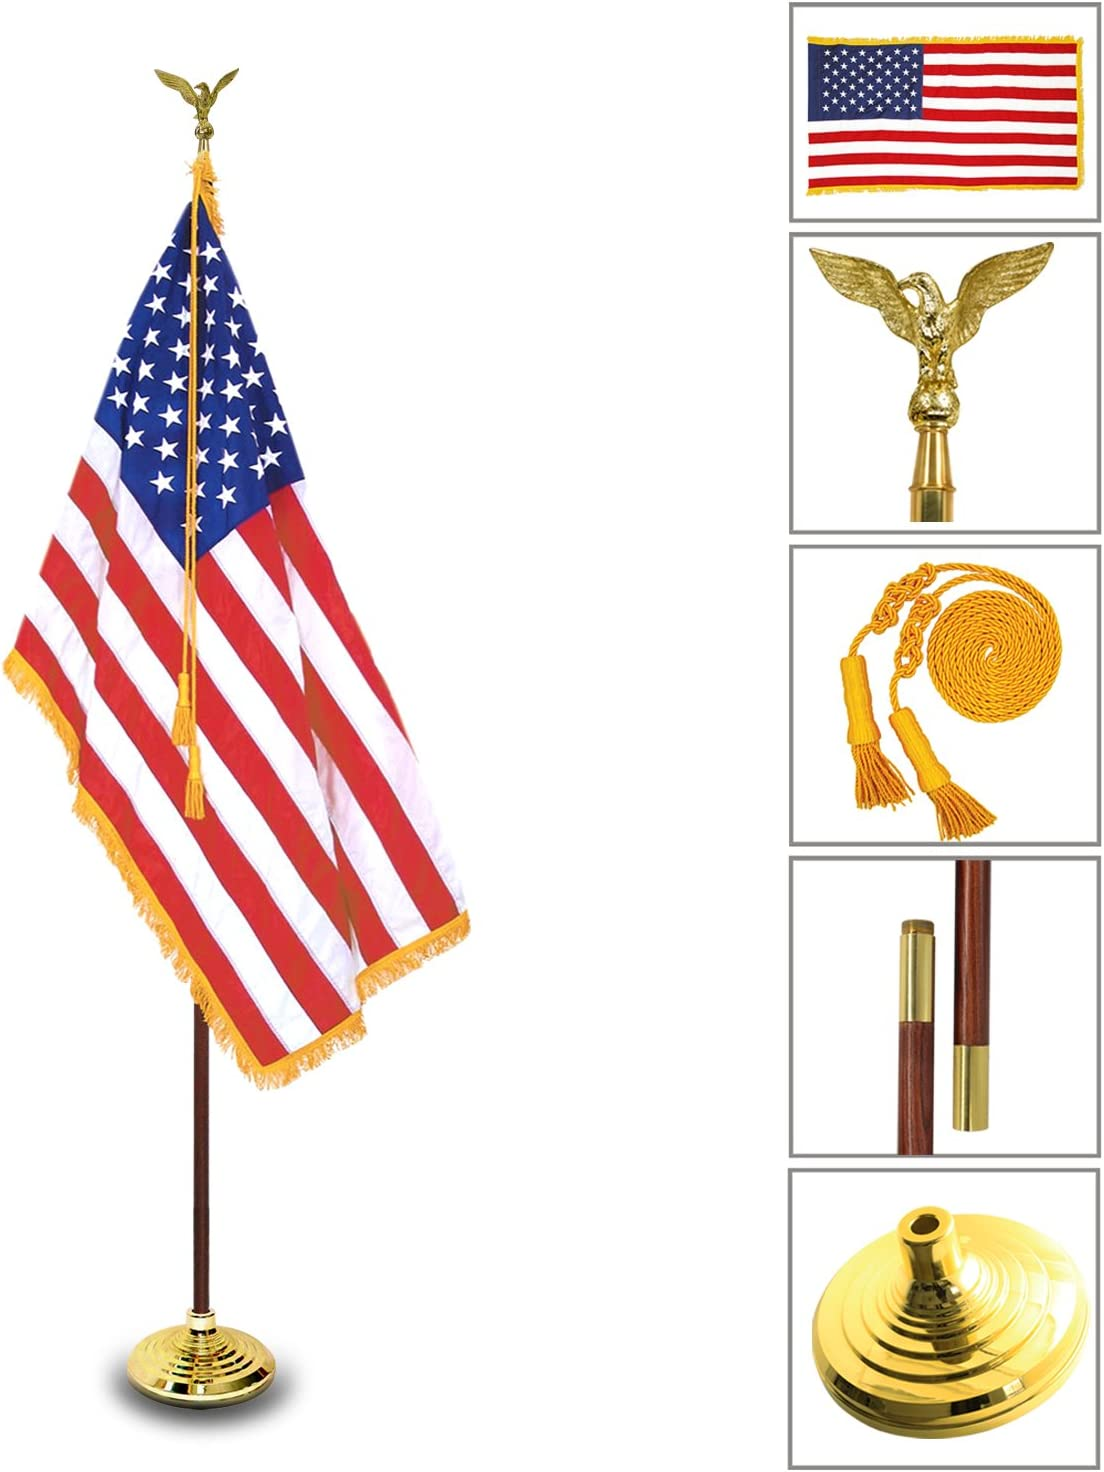 Anley 8 Ft Presidential Deluxe Indoor USA Flag Pole Set - 8' Oak Pole, Gold Fringed US Flag, Stand, Cord Tassel and Eagle Top Ornament for Offices, Schools, Churches & Auditoriums 8 Foot High